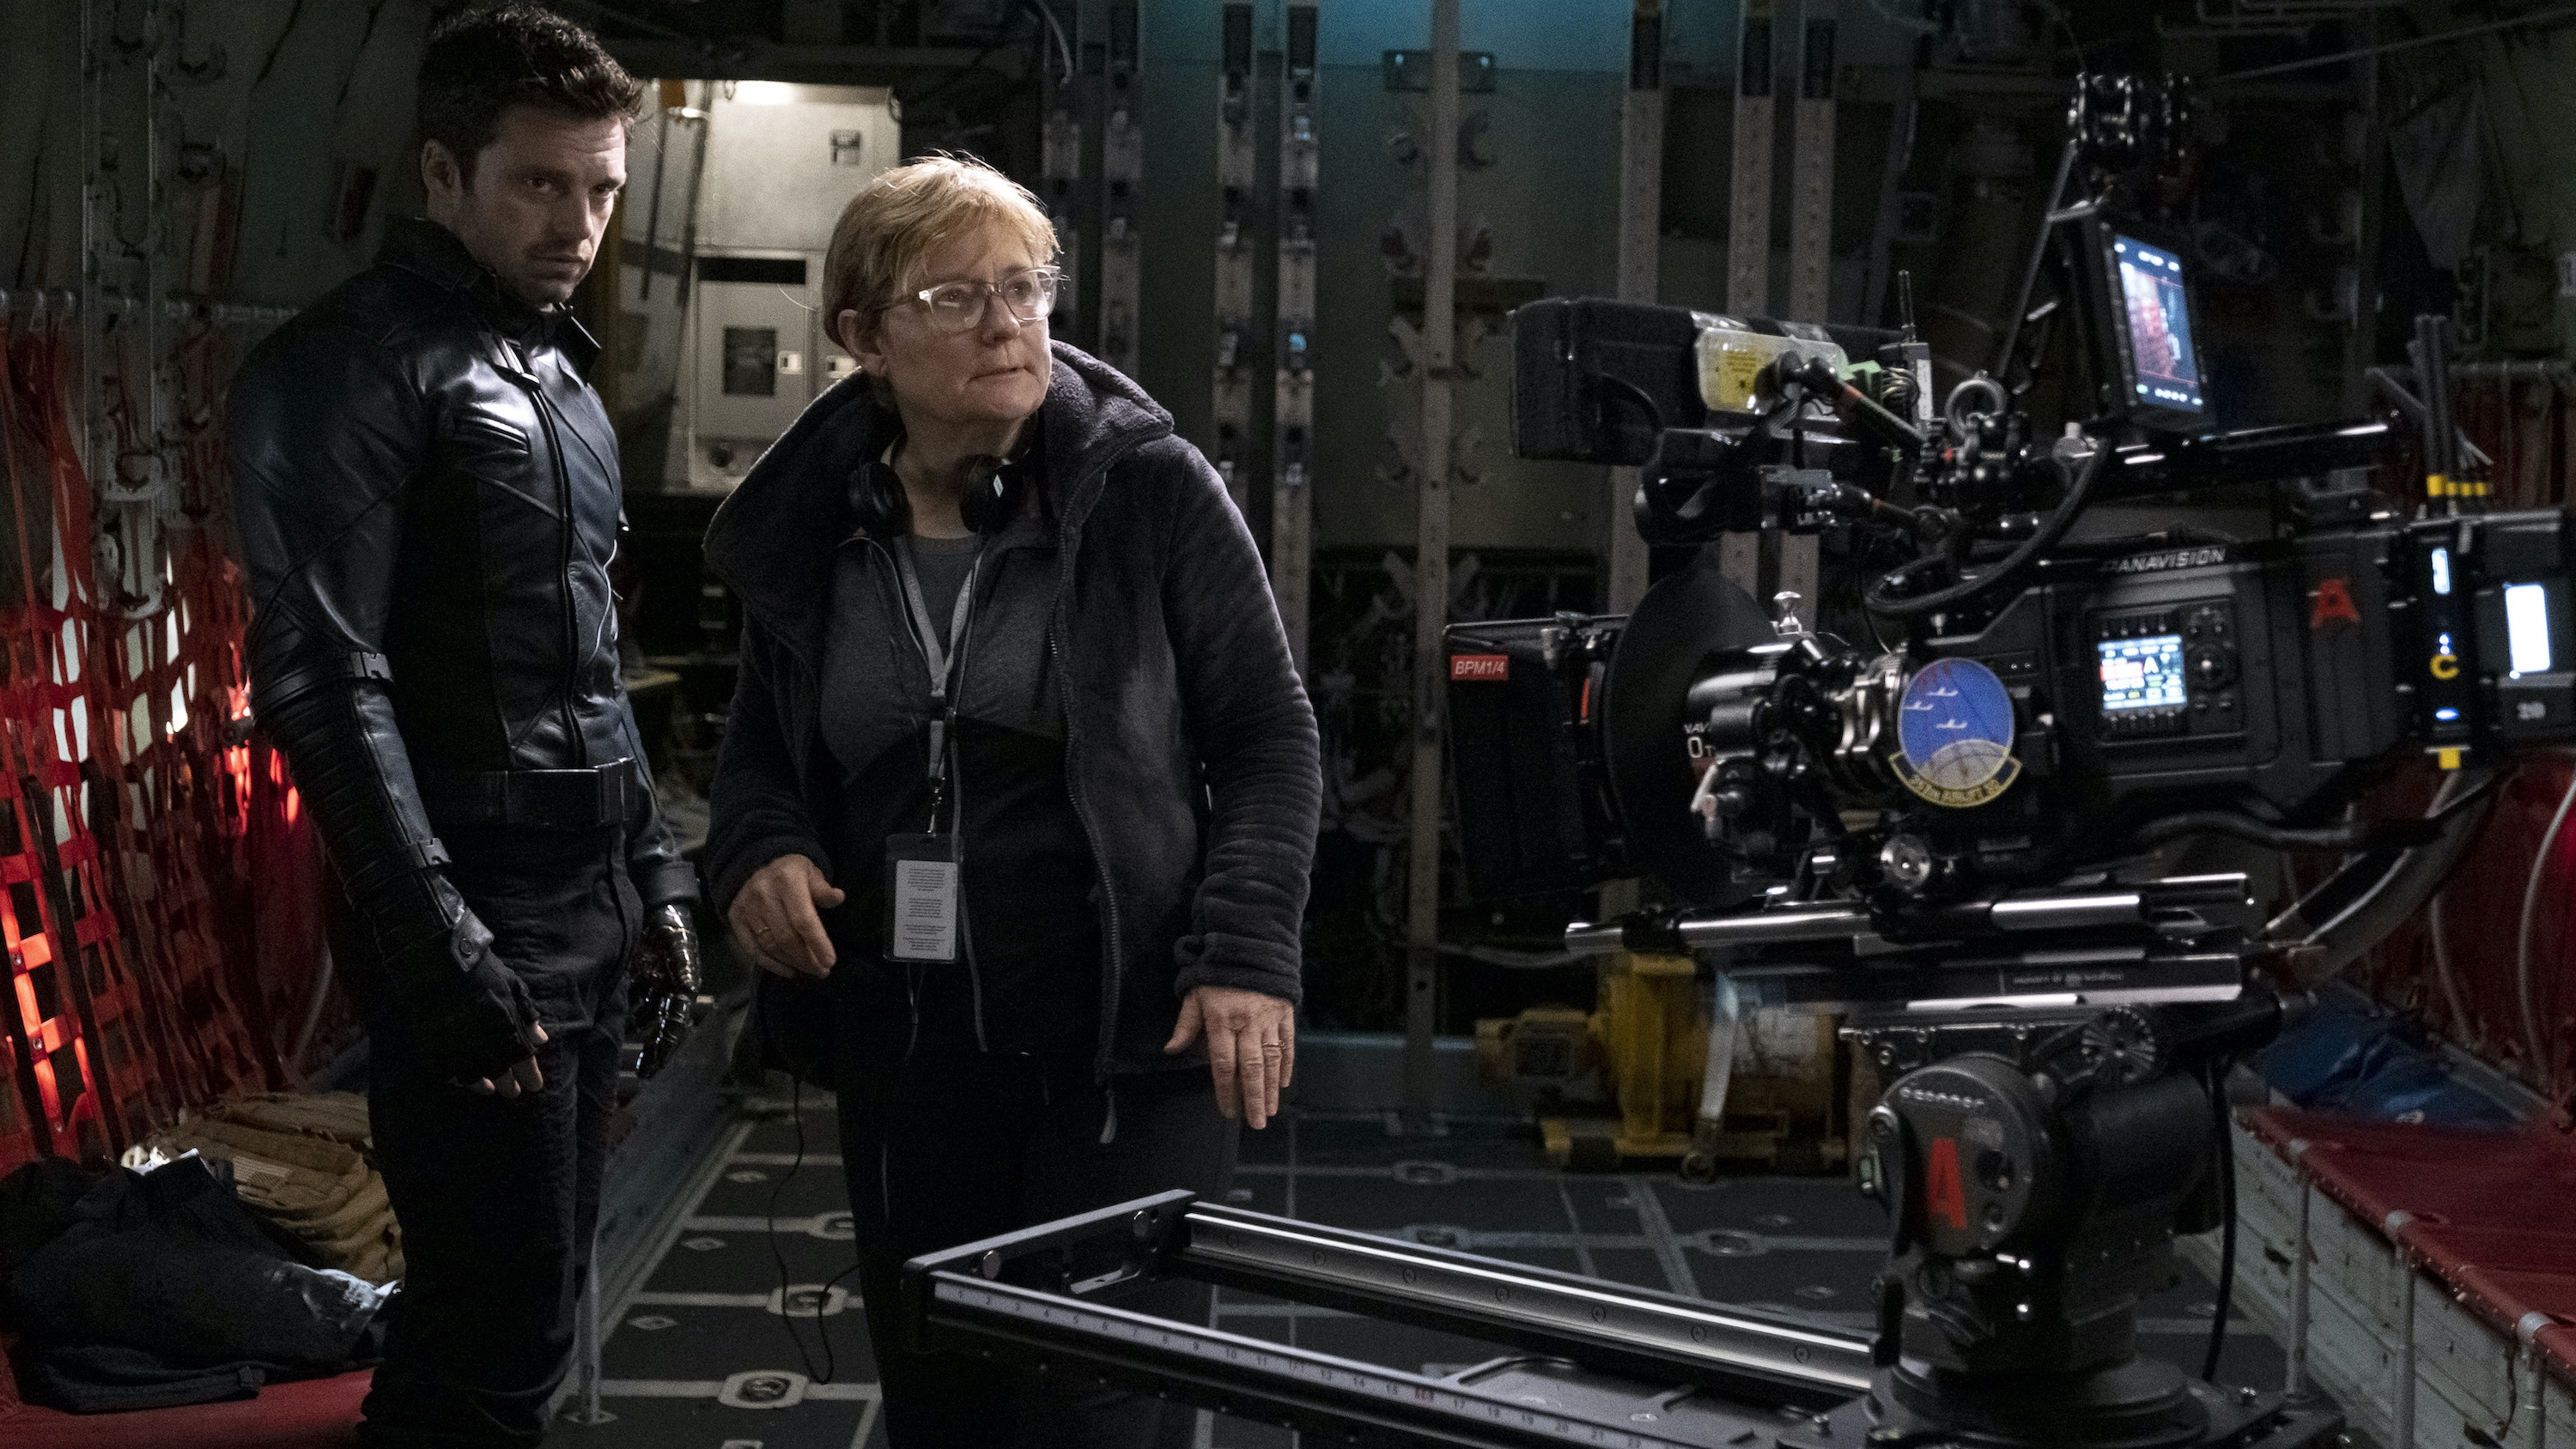 (L-R): Winter Soldier/Bucky Barnes (Sebastian Stan) and Director Kari Skogland on the set of Marvel Studios' THE FALCON AND THE WINTER SOLDIER exclusively on Disney+. Photo by Chuck Zlotnick. ©Marvel Studios 2020. All Rights Reserved.